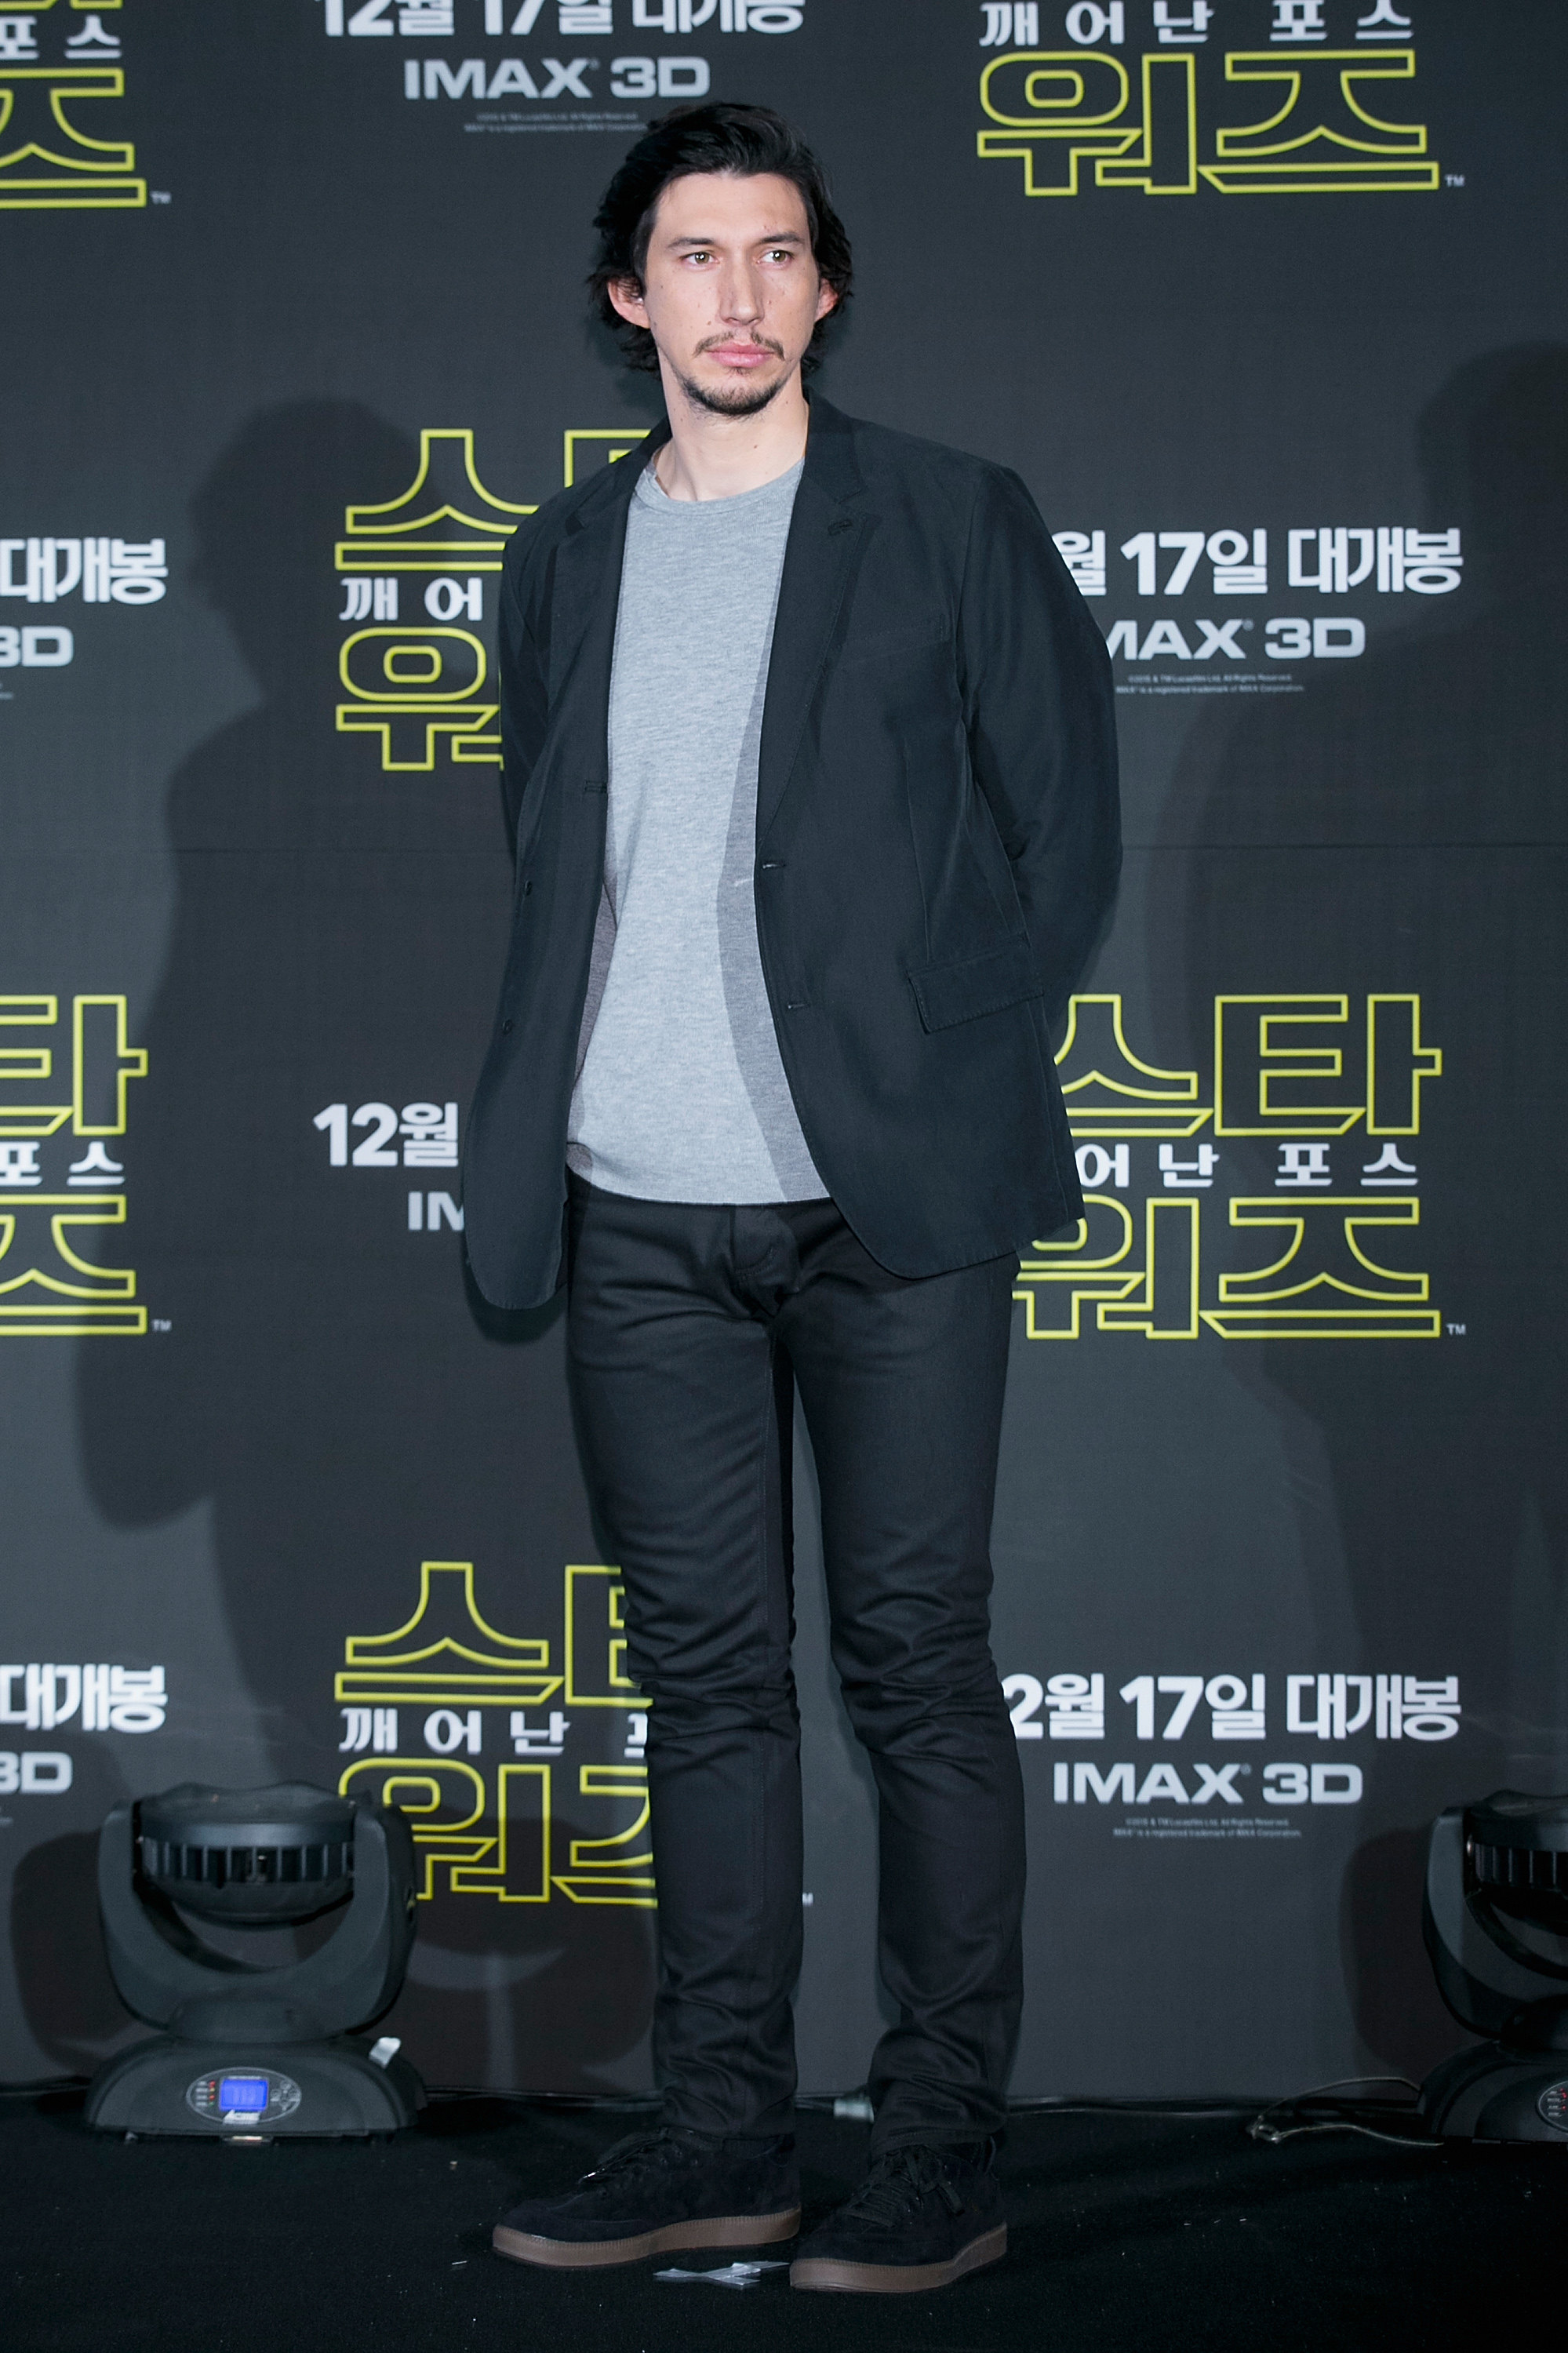 SEOUL, SOUTH KOREA - DECEMBER 09: Actor Adam Driver attends the press conference for 'Star Wars: The Force Awakens' at the Conrad Hotel on December 9, 2015 in Seoul, South Korea. The film will open on December 17, in South Korea. (Photo by